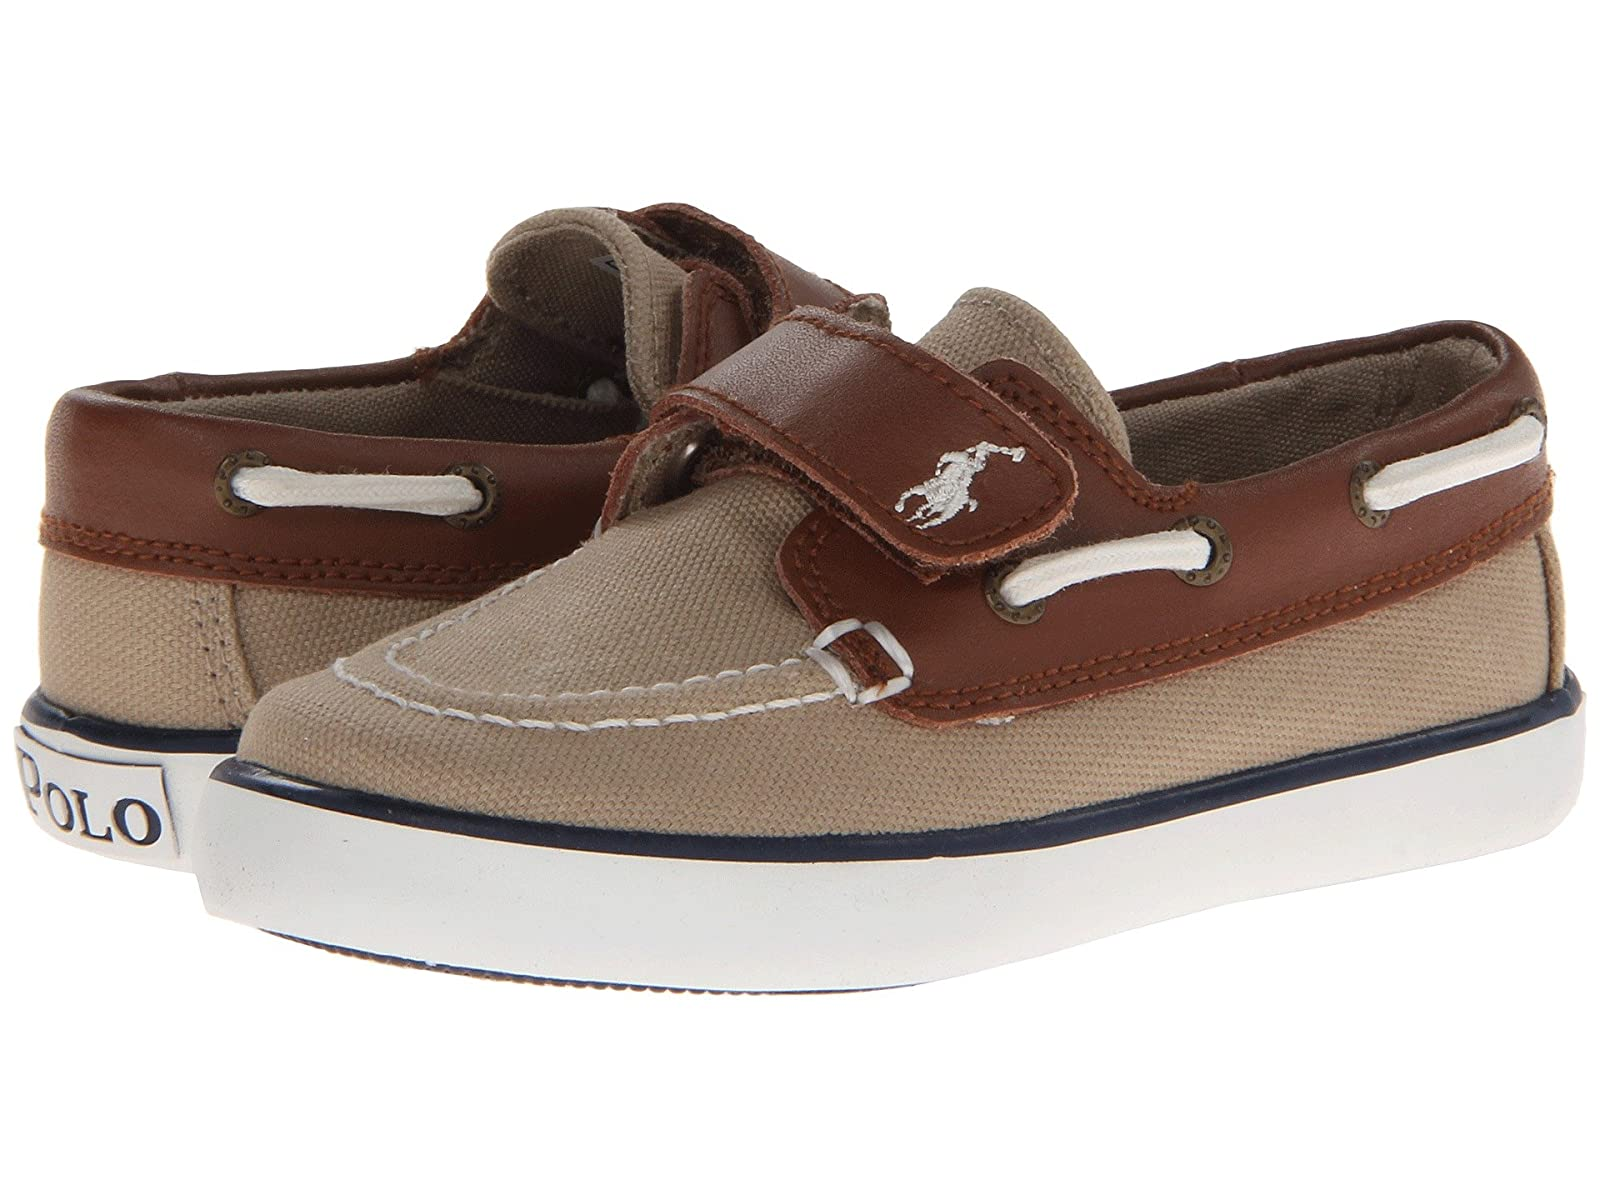 Polo Ralph Lauren Kids Sander-CL EZ (Toddler)Selling fashionable and eye-catching shoes